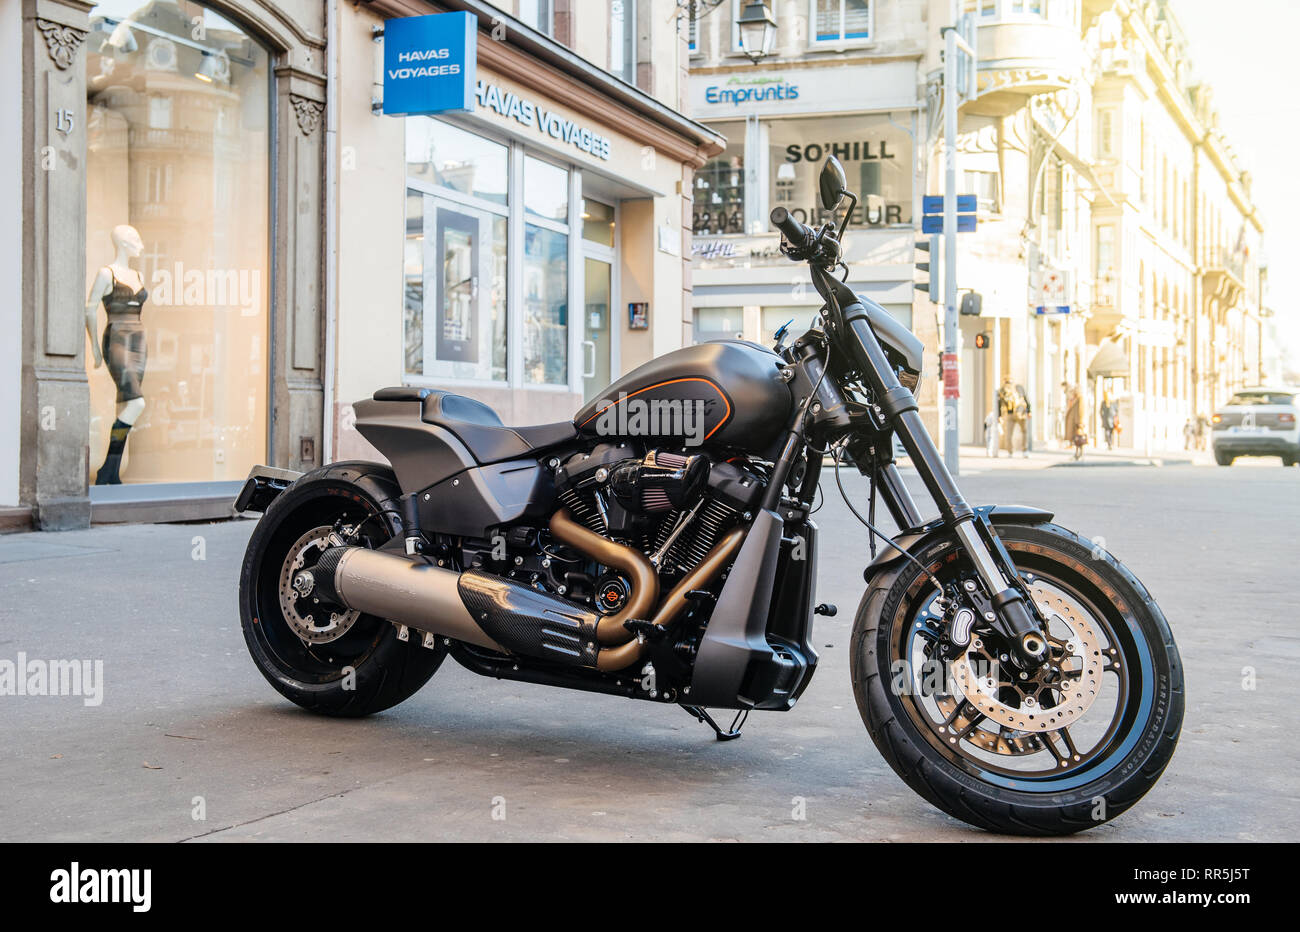 Strasbourg, France - Feb 16, 2018: Parked in the city brand new Harley Davidson bike motorbike with shops and buildings in the background - Stock Image